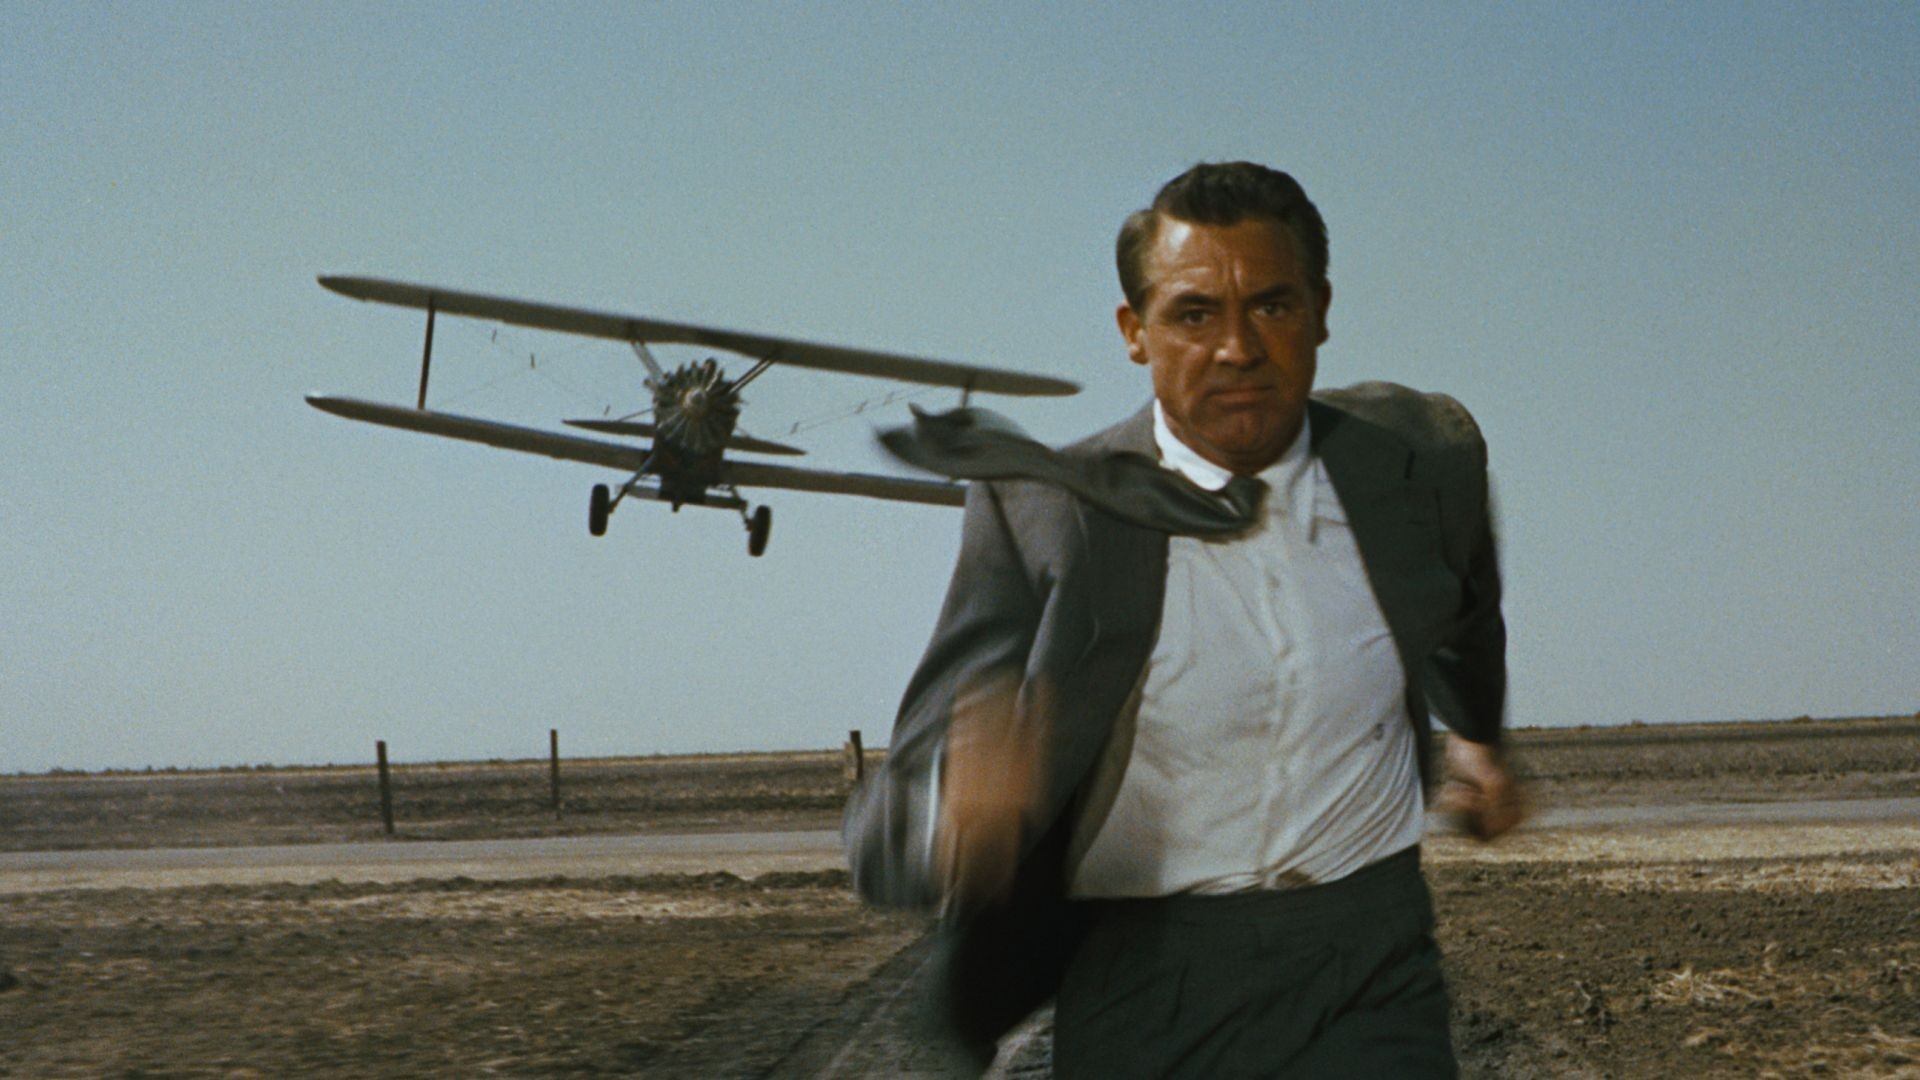 north by northwest 1959 HD Wallpaper